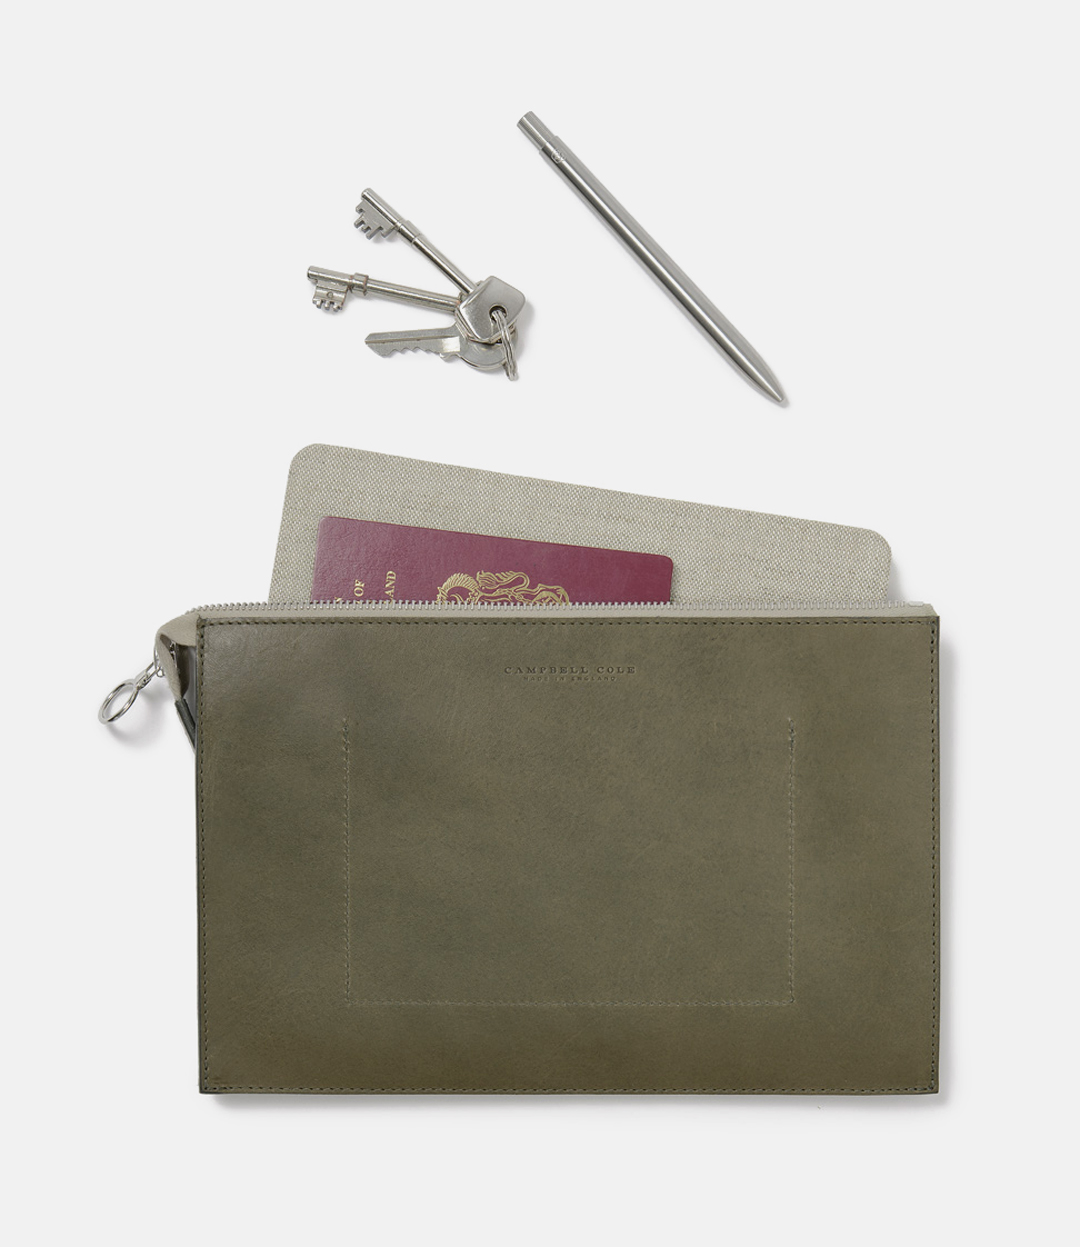 Campbell Cole. CampbellCole. Simple Collection. Simple Coin Pouch. SimpleCoinPouch. Khaki. Banton Frameworks